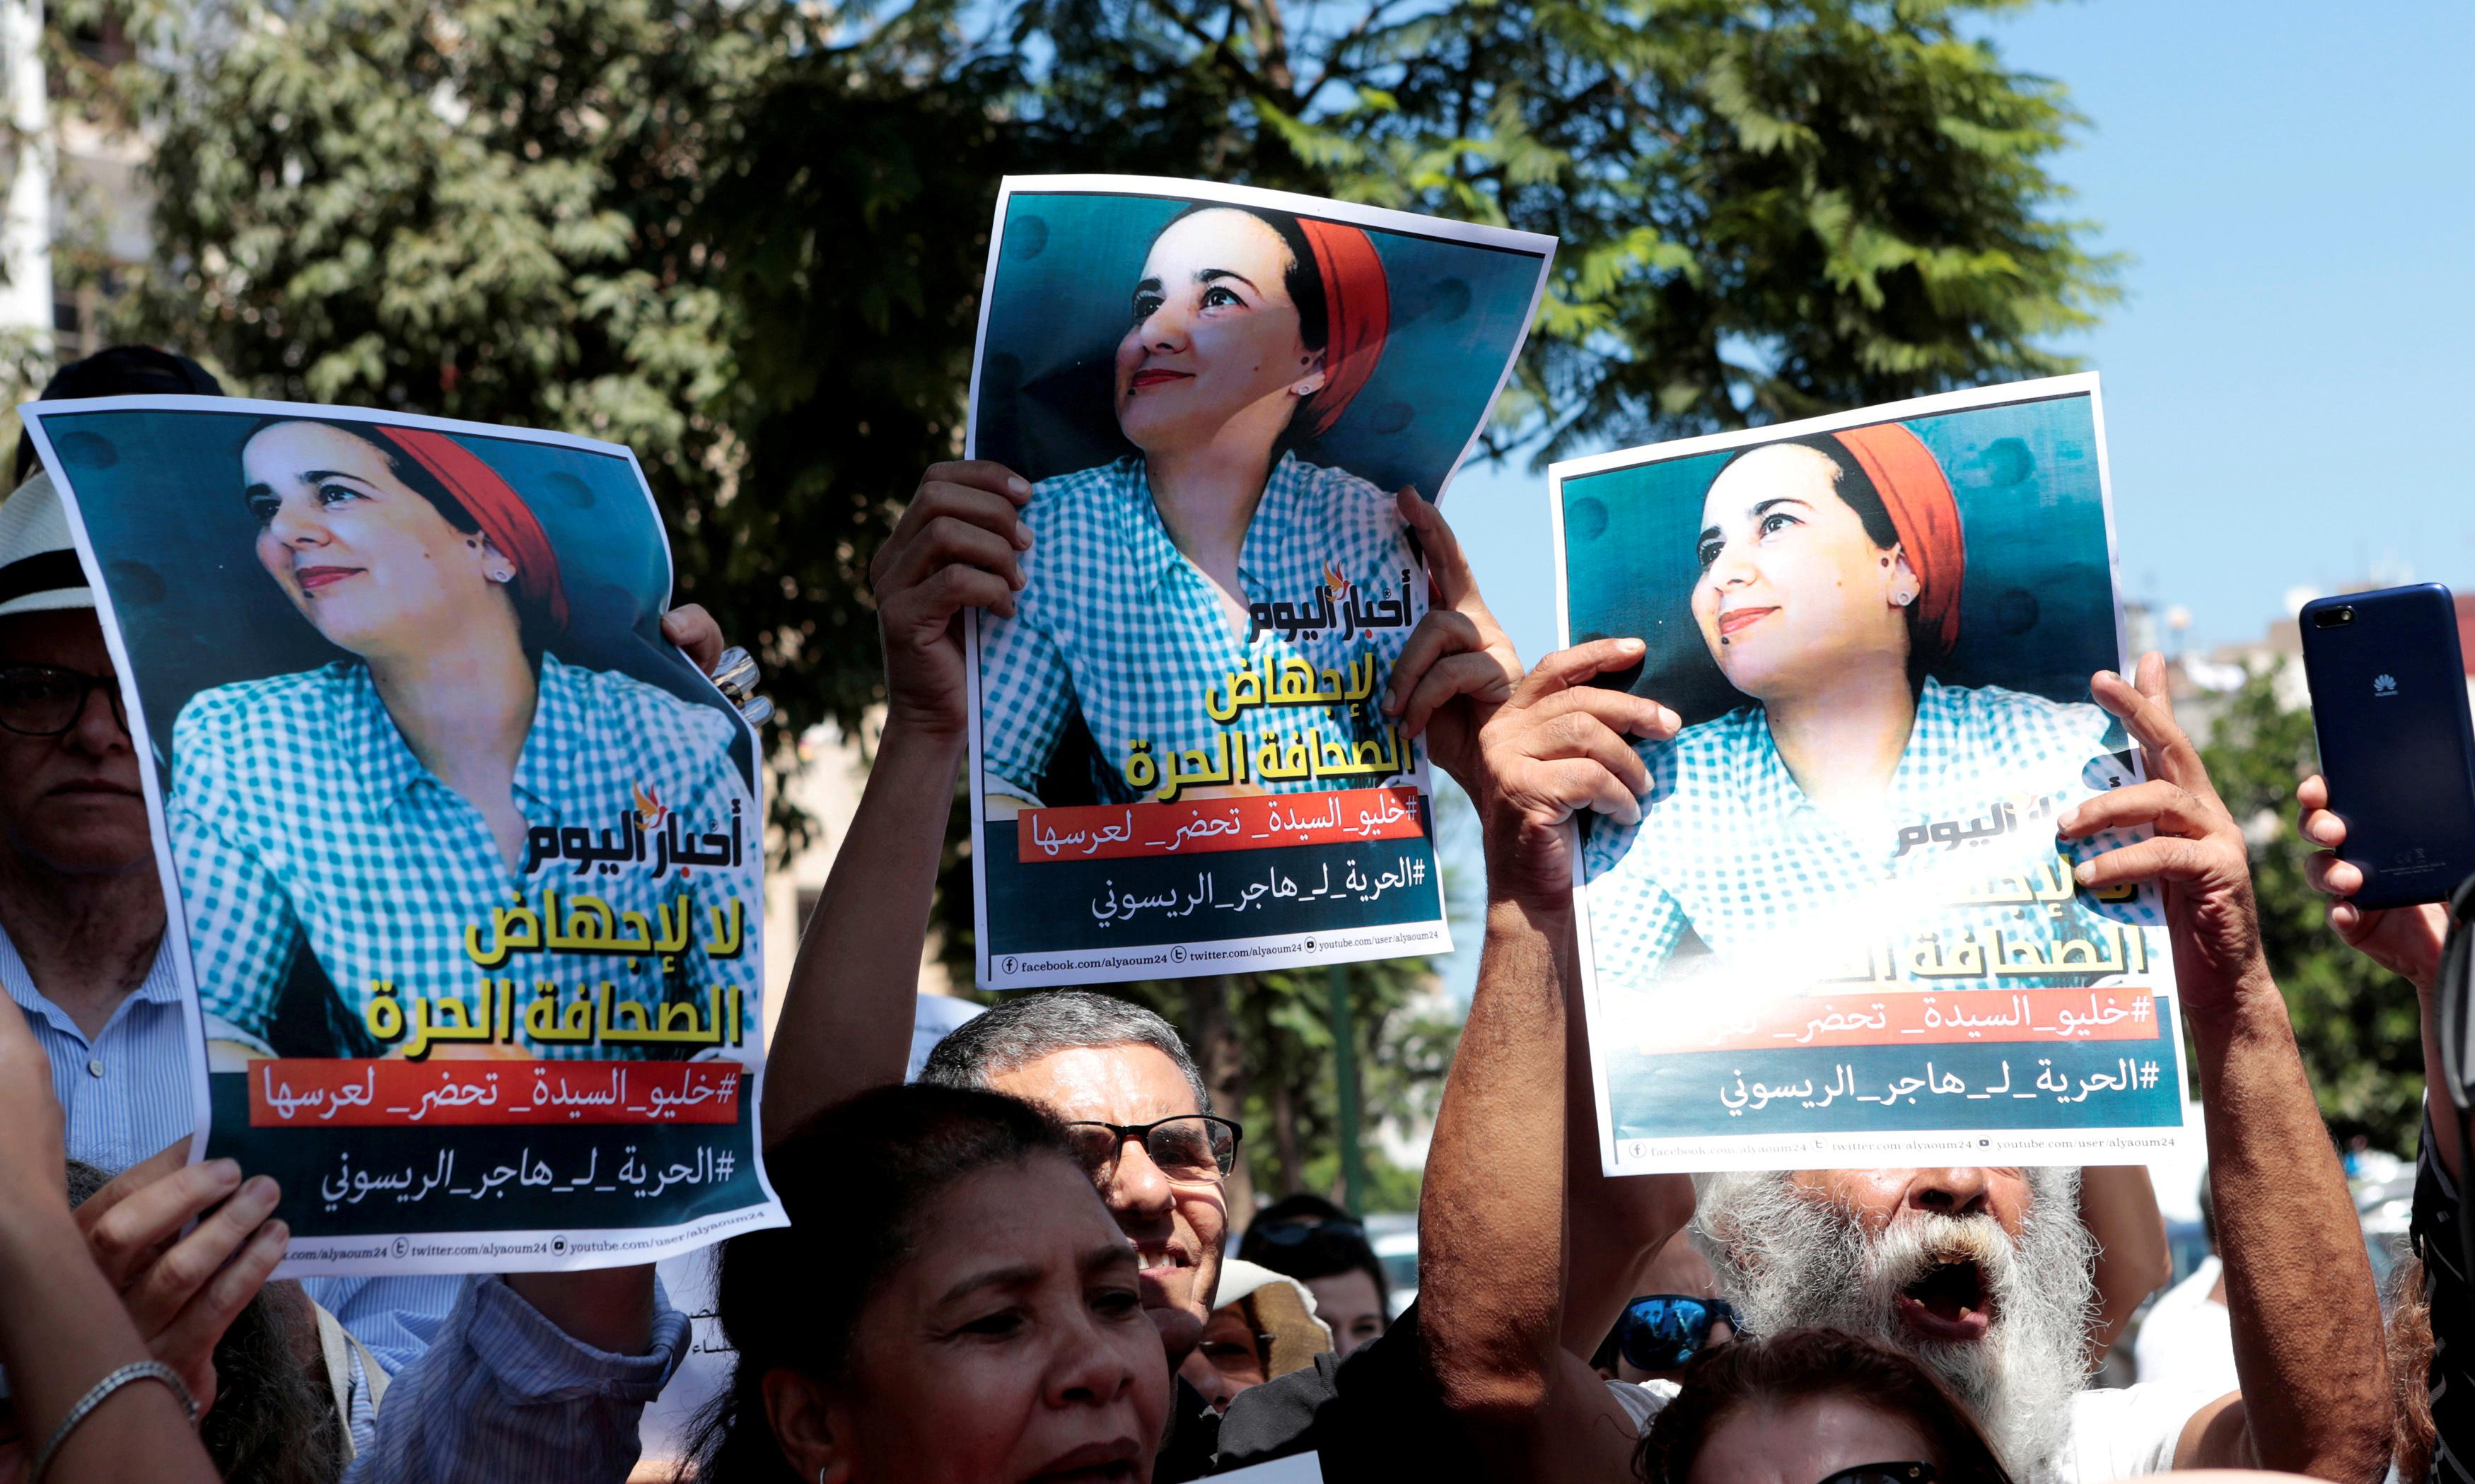 Moroccan journalist jailed for 'illegal abortion' pardoned by king